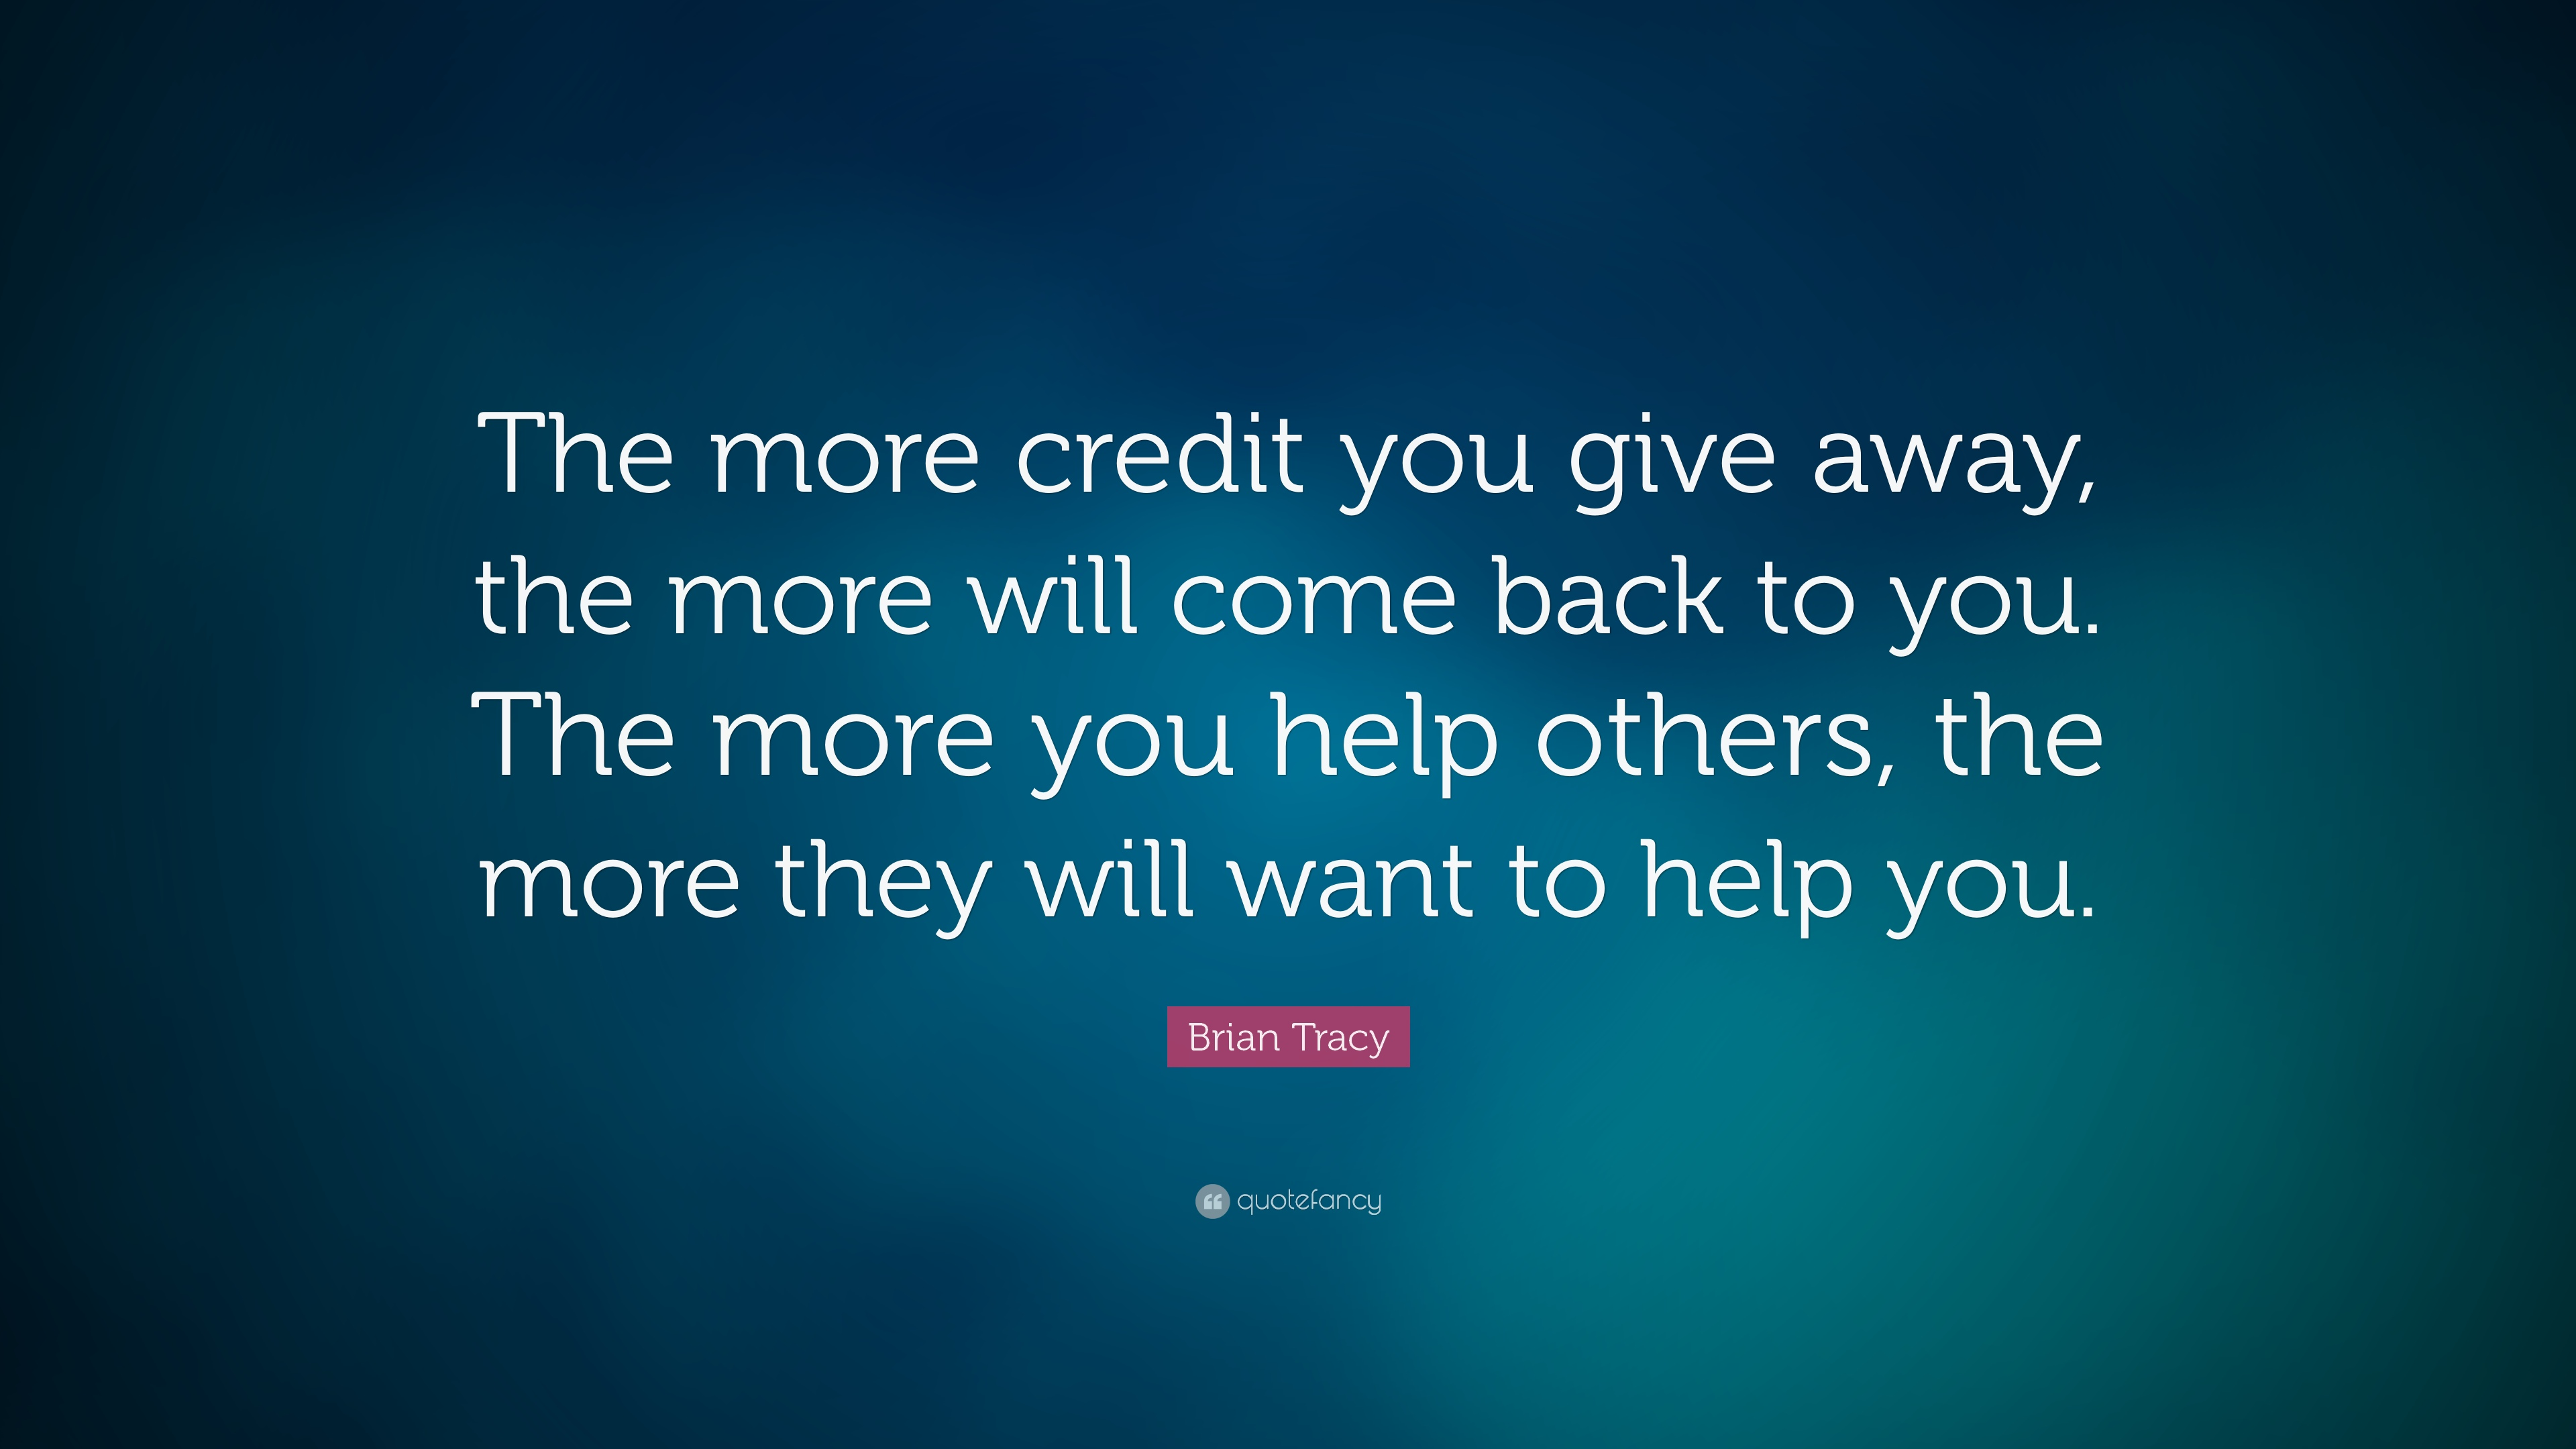 Brian Tracy Quote The More Credit You Give Away The More Will